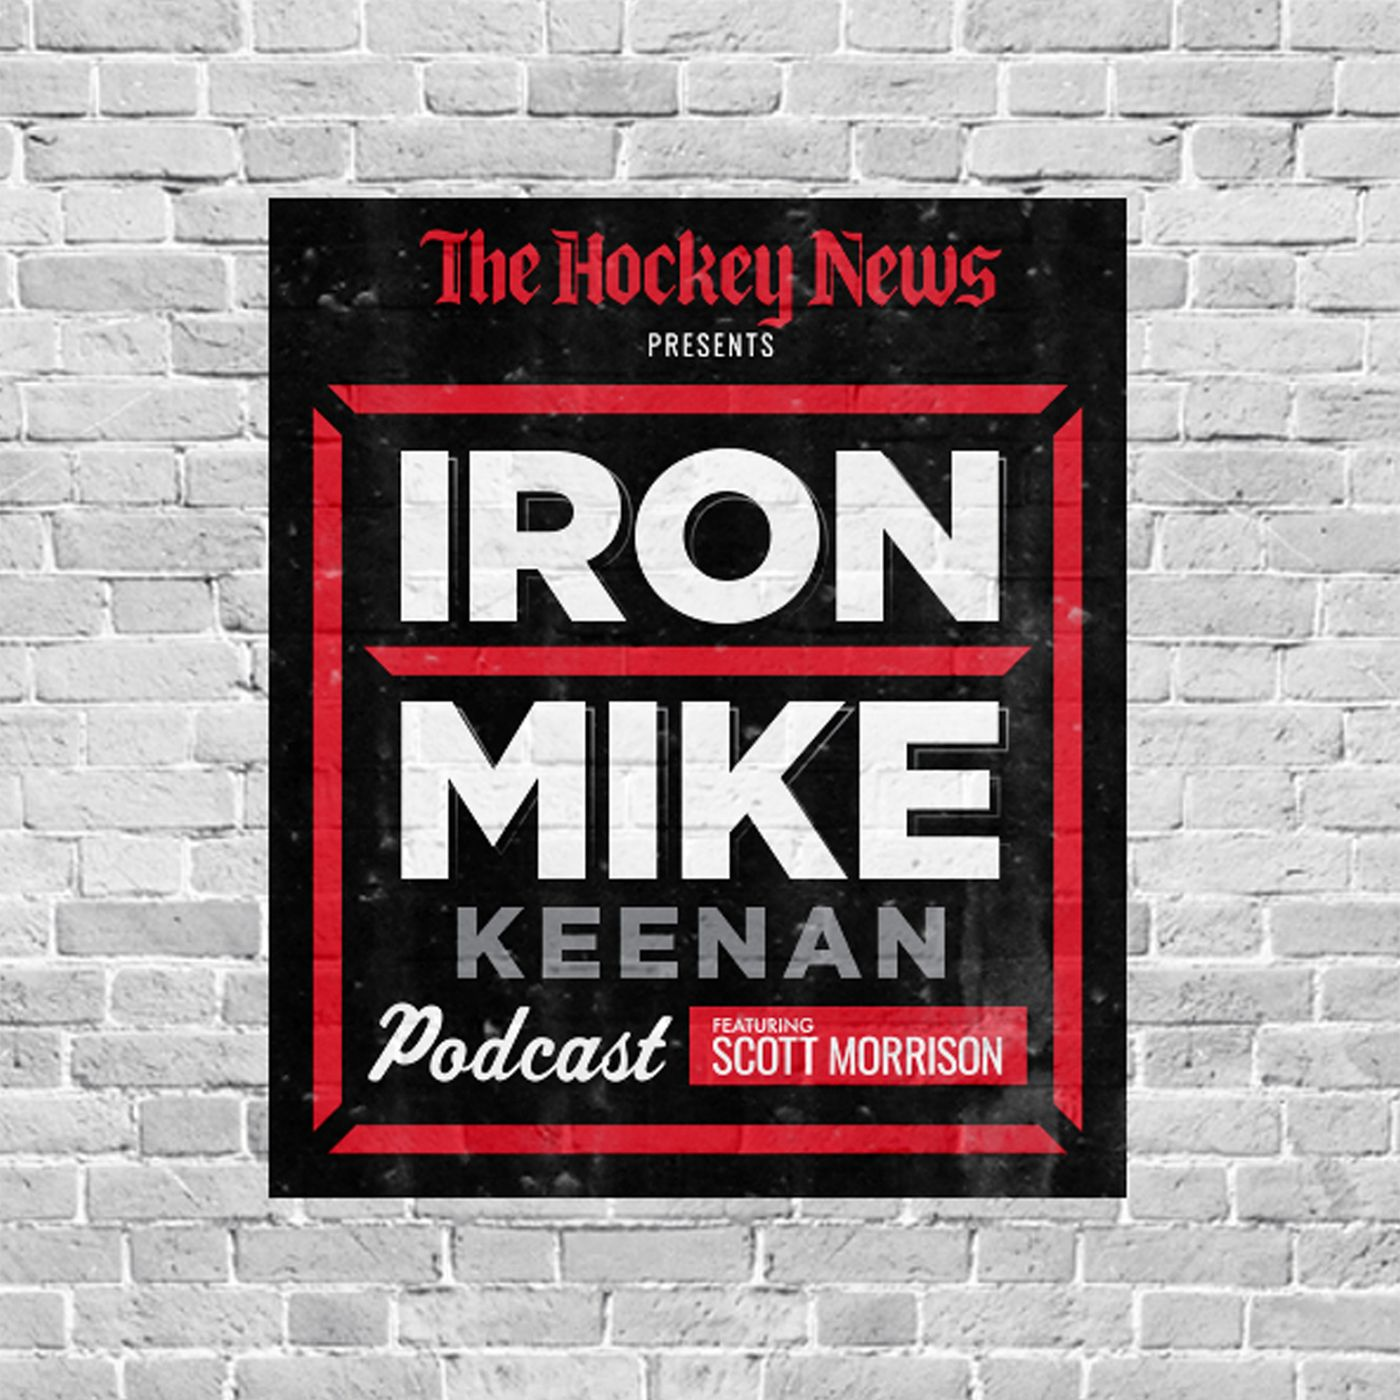 Iron Mike Keenan Podcast: Episode 21 – The Great Characters of the Game